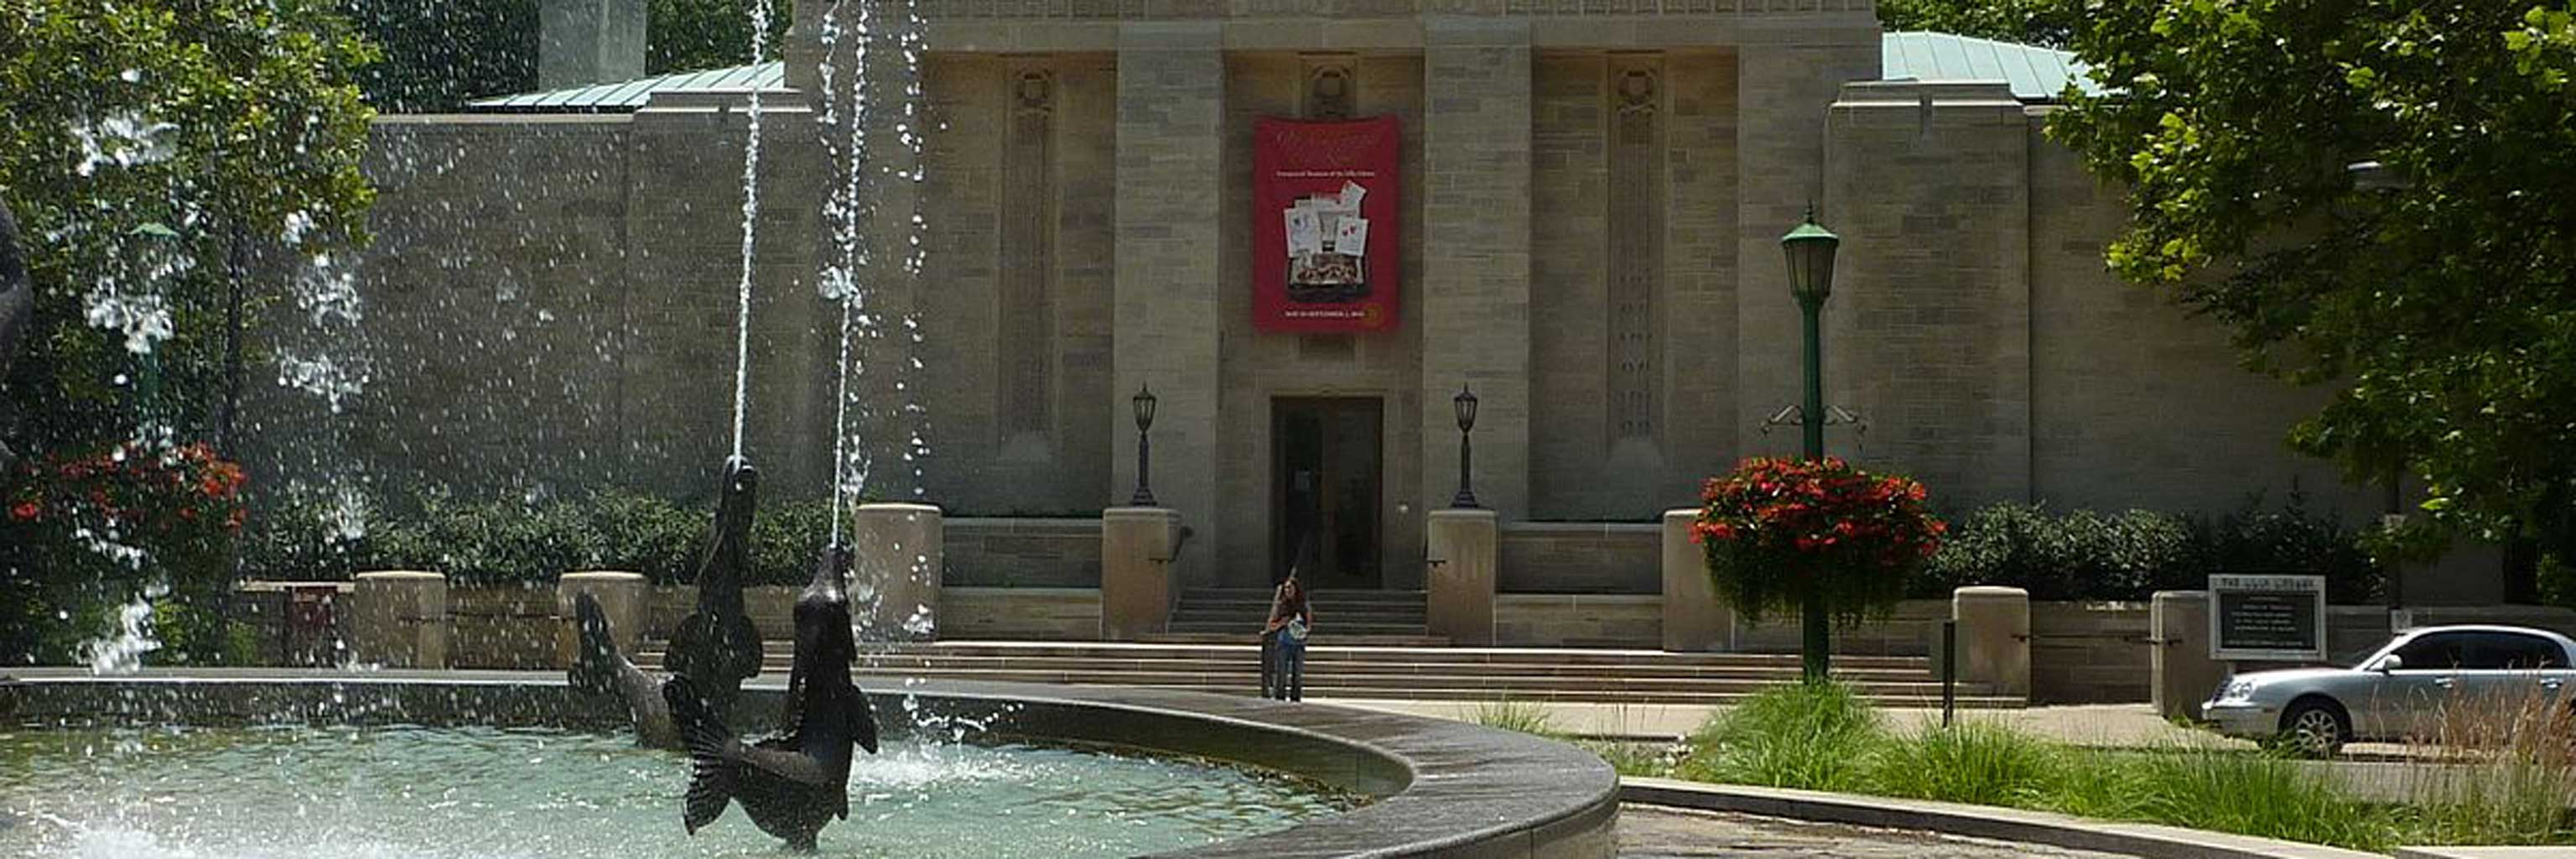 Fountain in front of the Lilly library